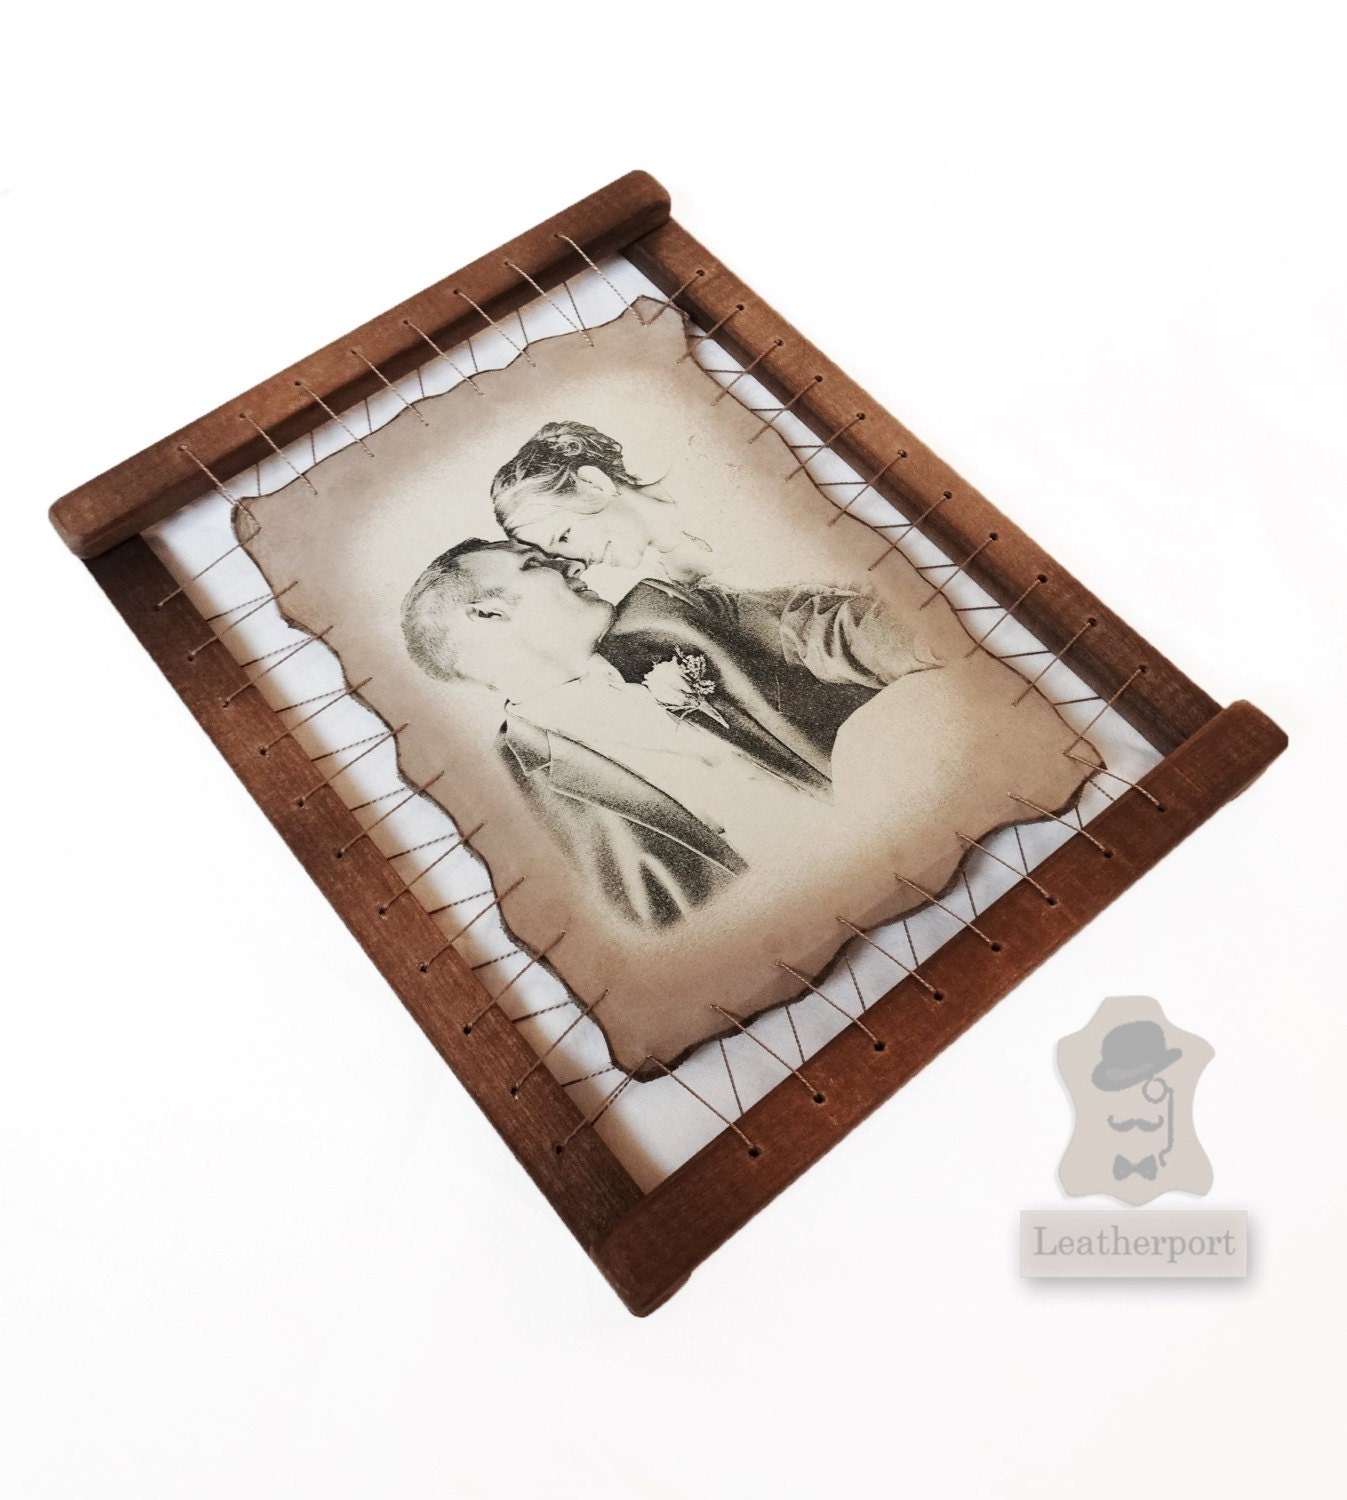 6th Wedding Anniversary Gift Ideas For Husband : 6th Wedding Anniversary Gifts For Men Iron Marriage by Leatherport